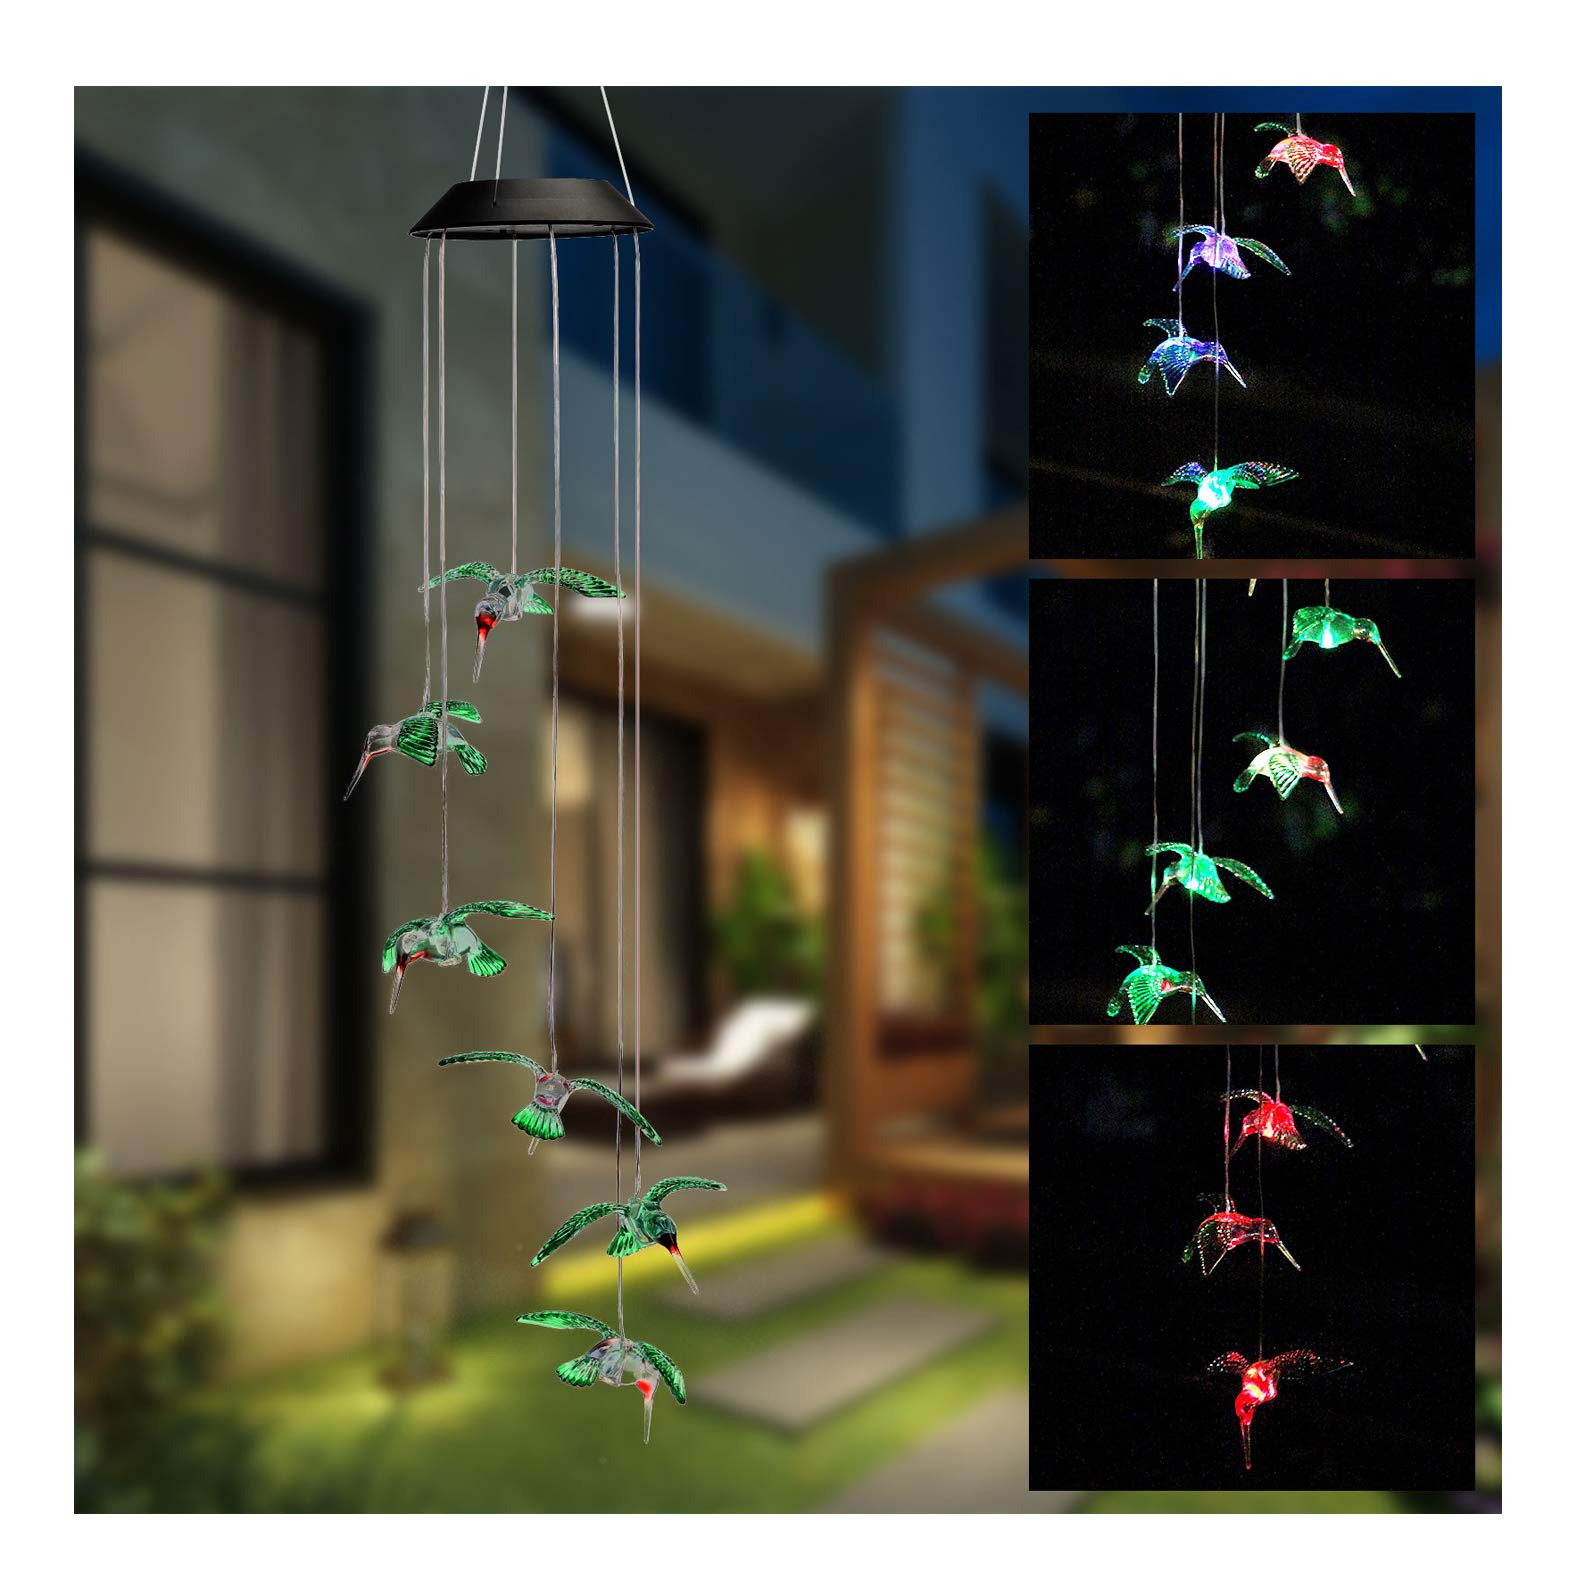 Isyunen Color-Changing Led Solar Mobiles Wind Chimes Outdoor - Waterproof Night Light Solar Powered Six Hummingbird Wind Chime for Home, Party,Christmas, Garden, Yard Decoration,Festival Decor